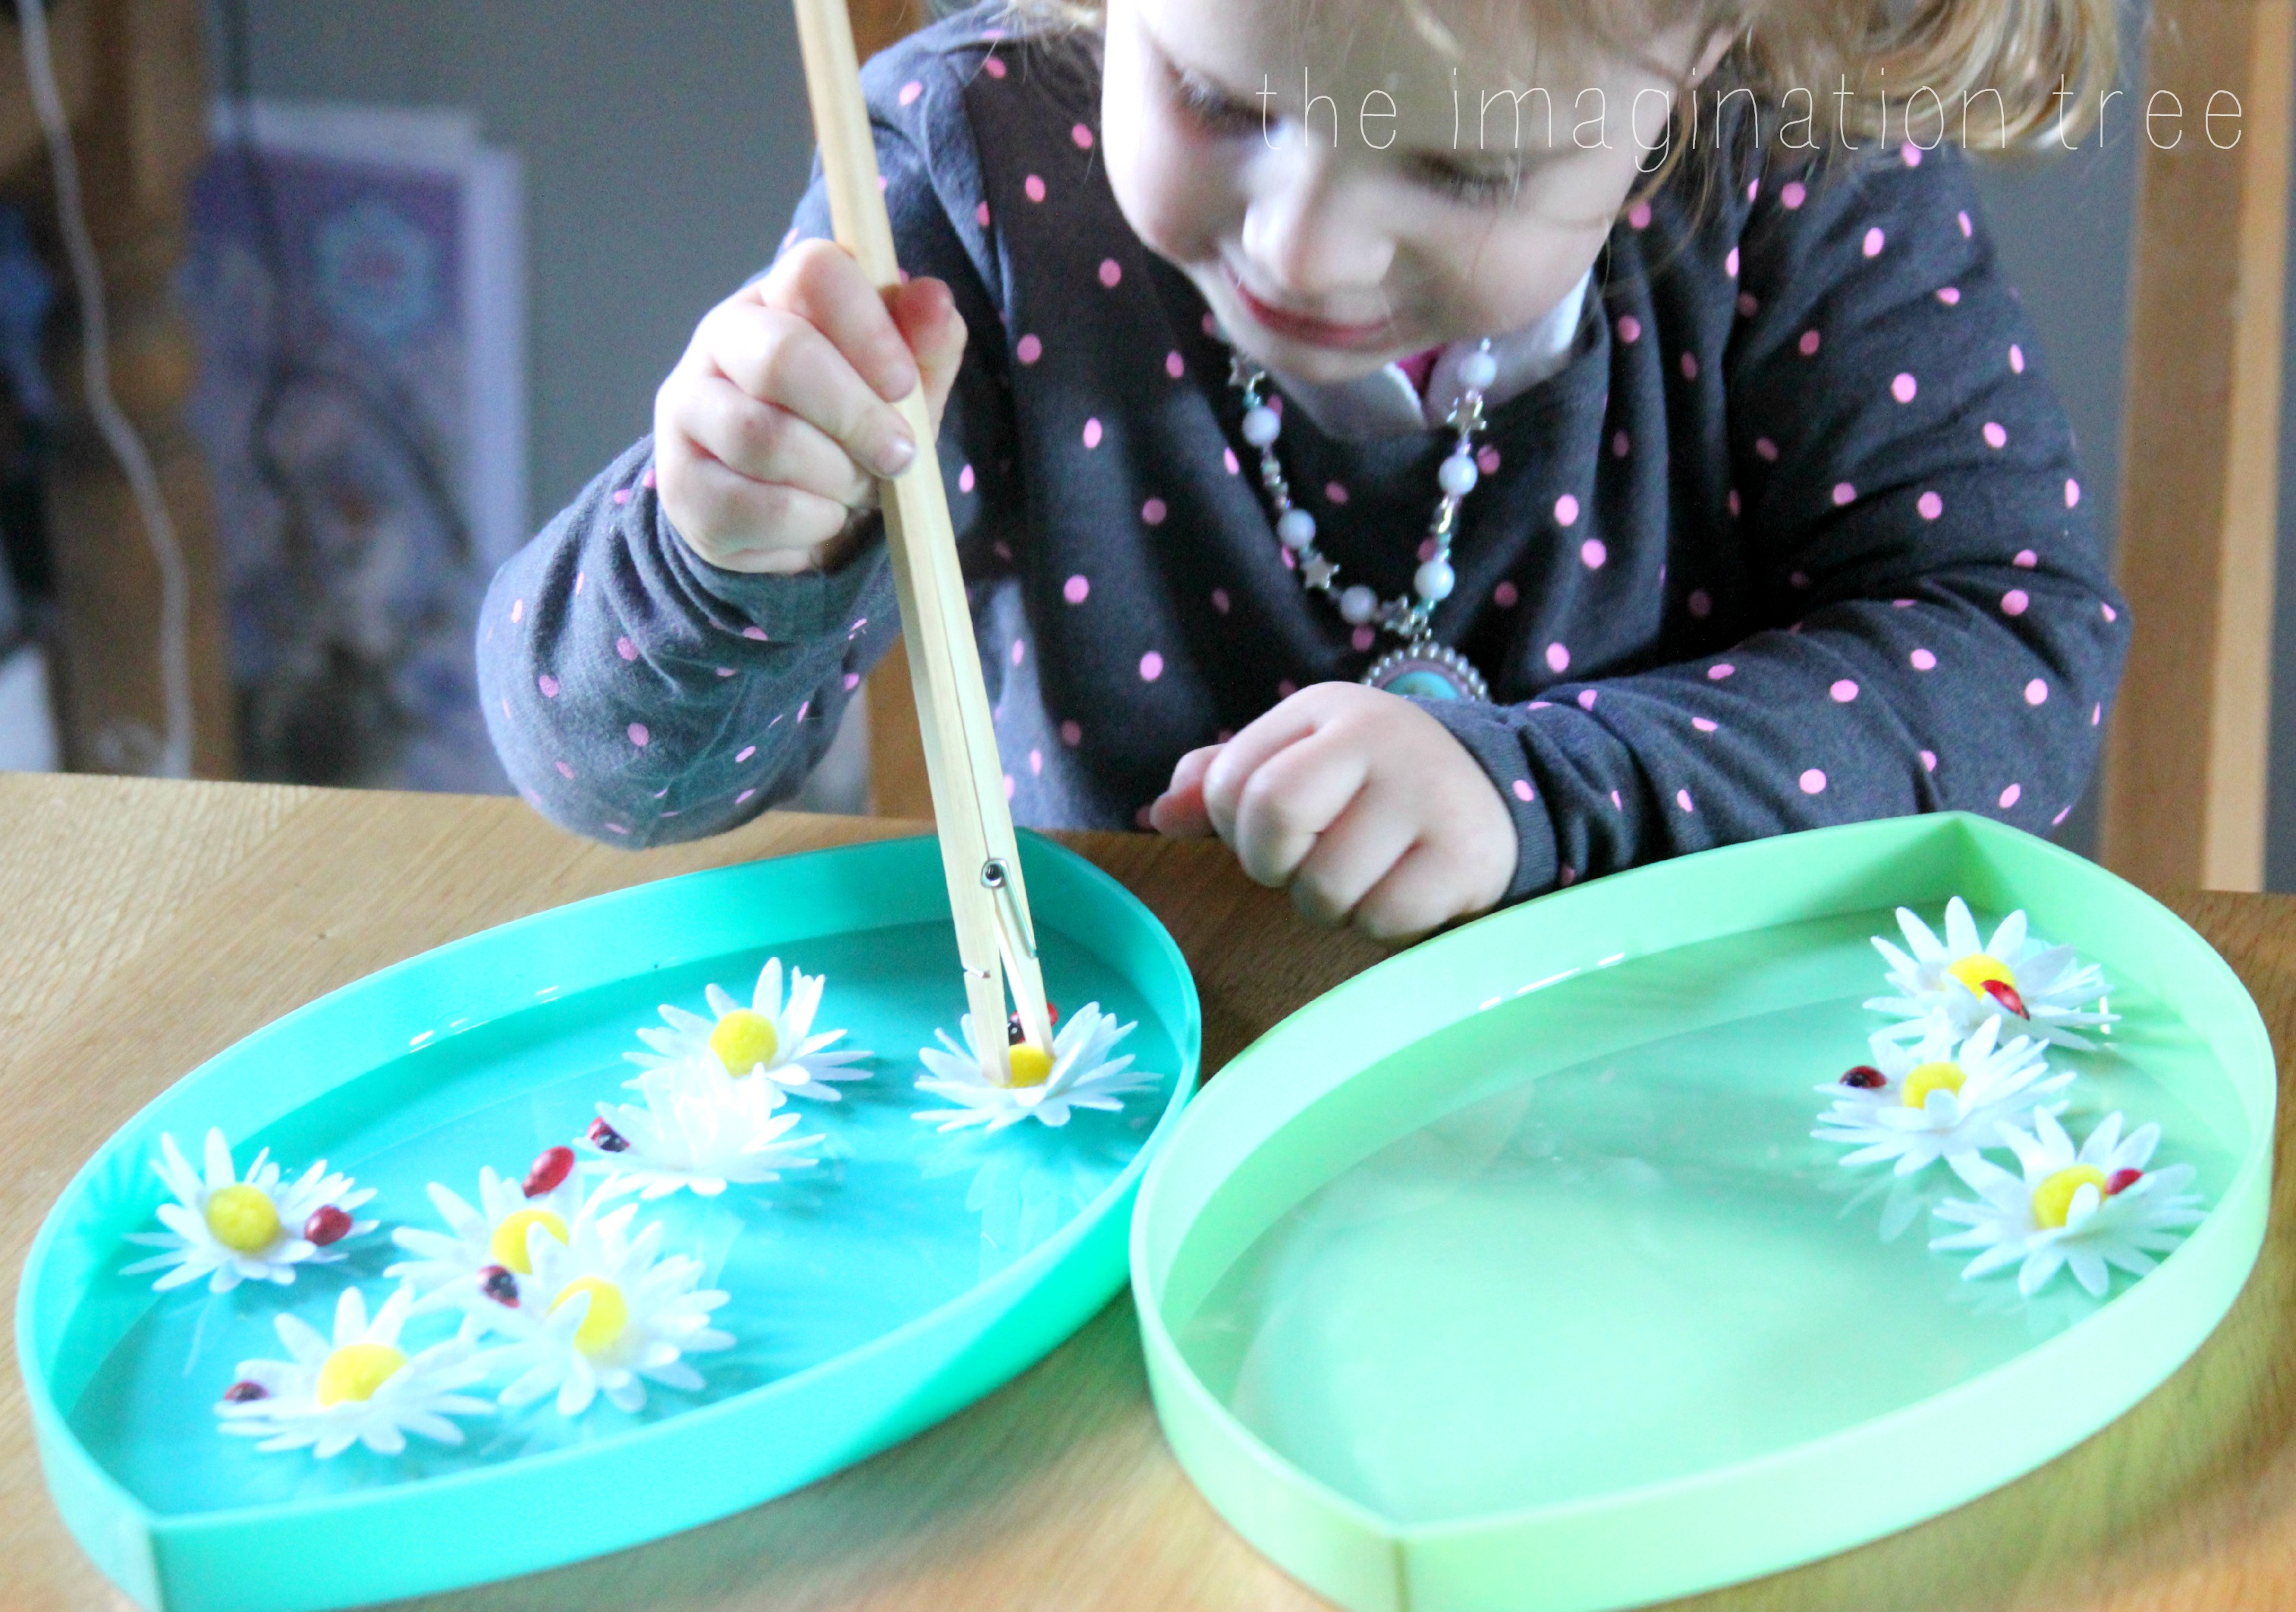 Counting flowers fine motor skills activity the for Small motor activities for infants